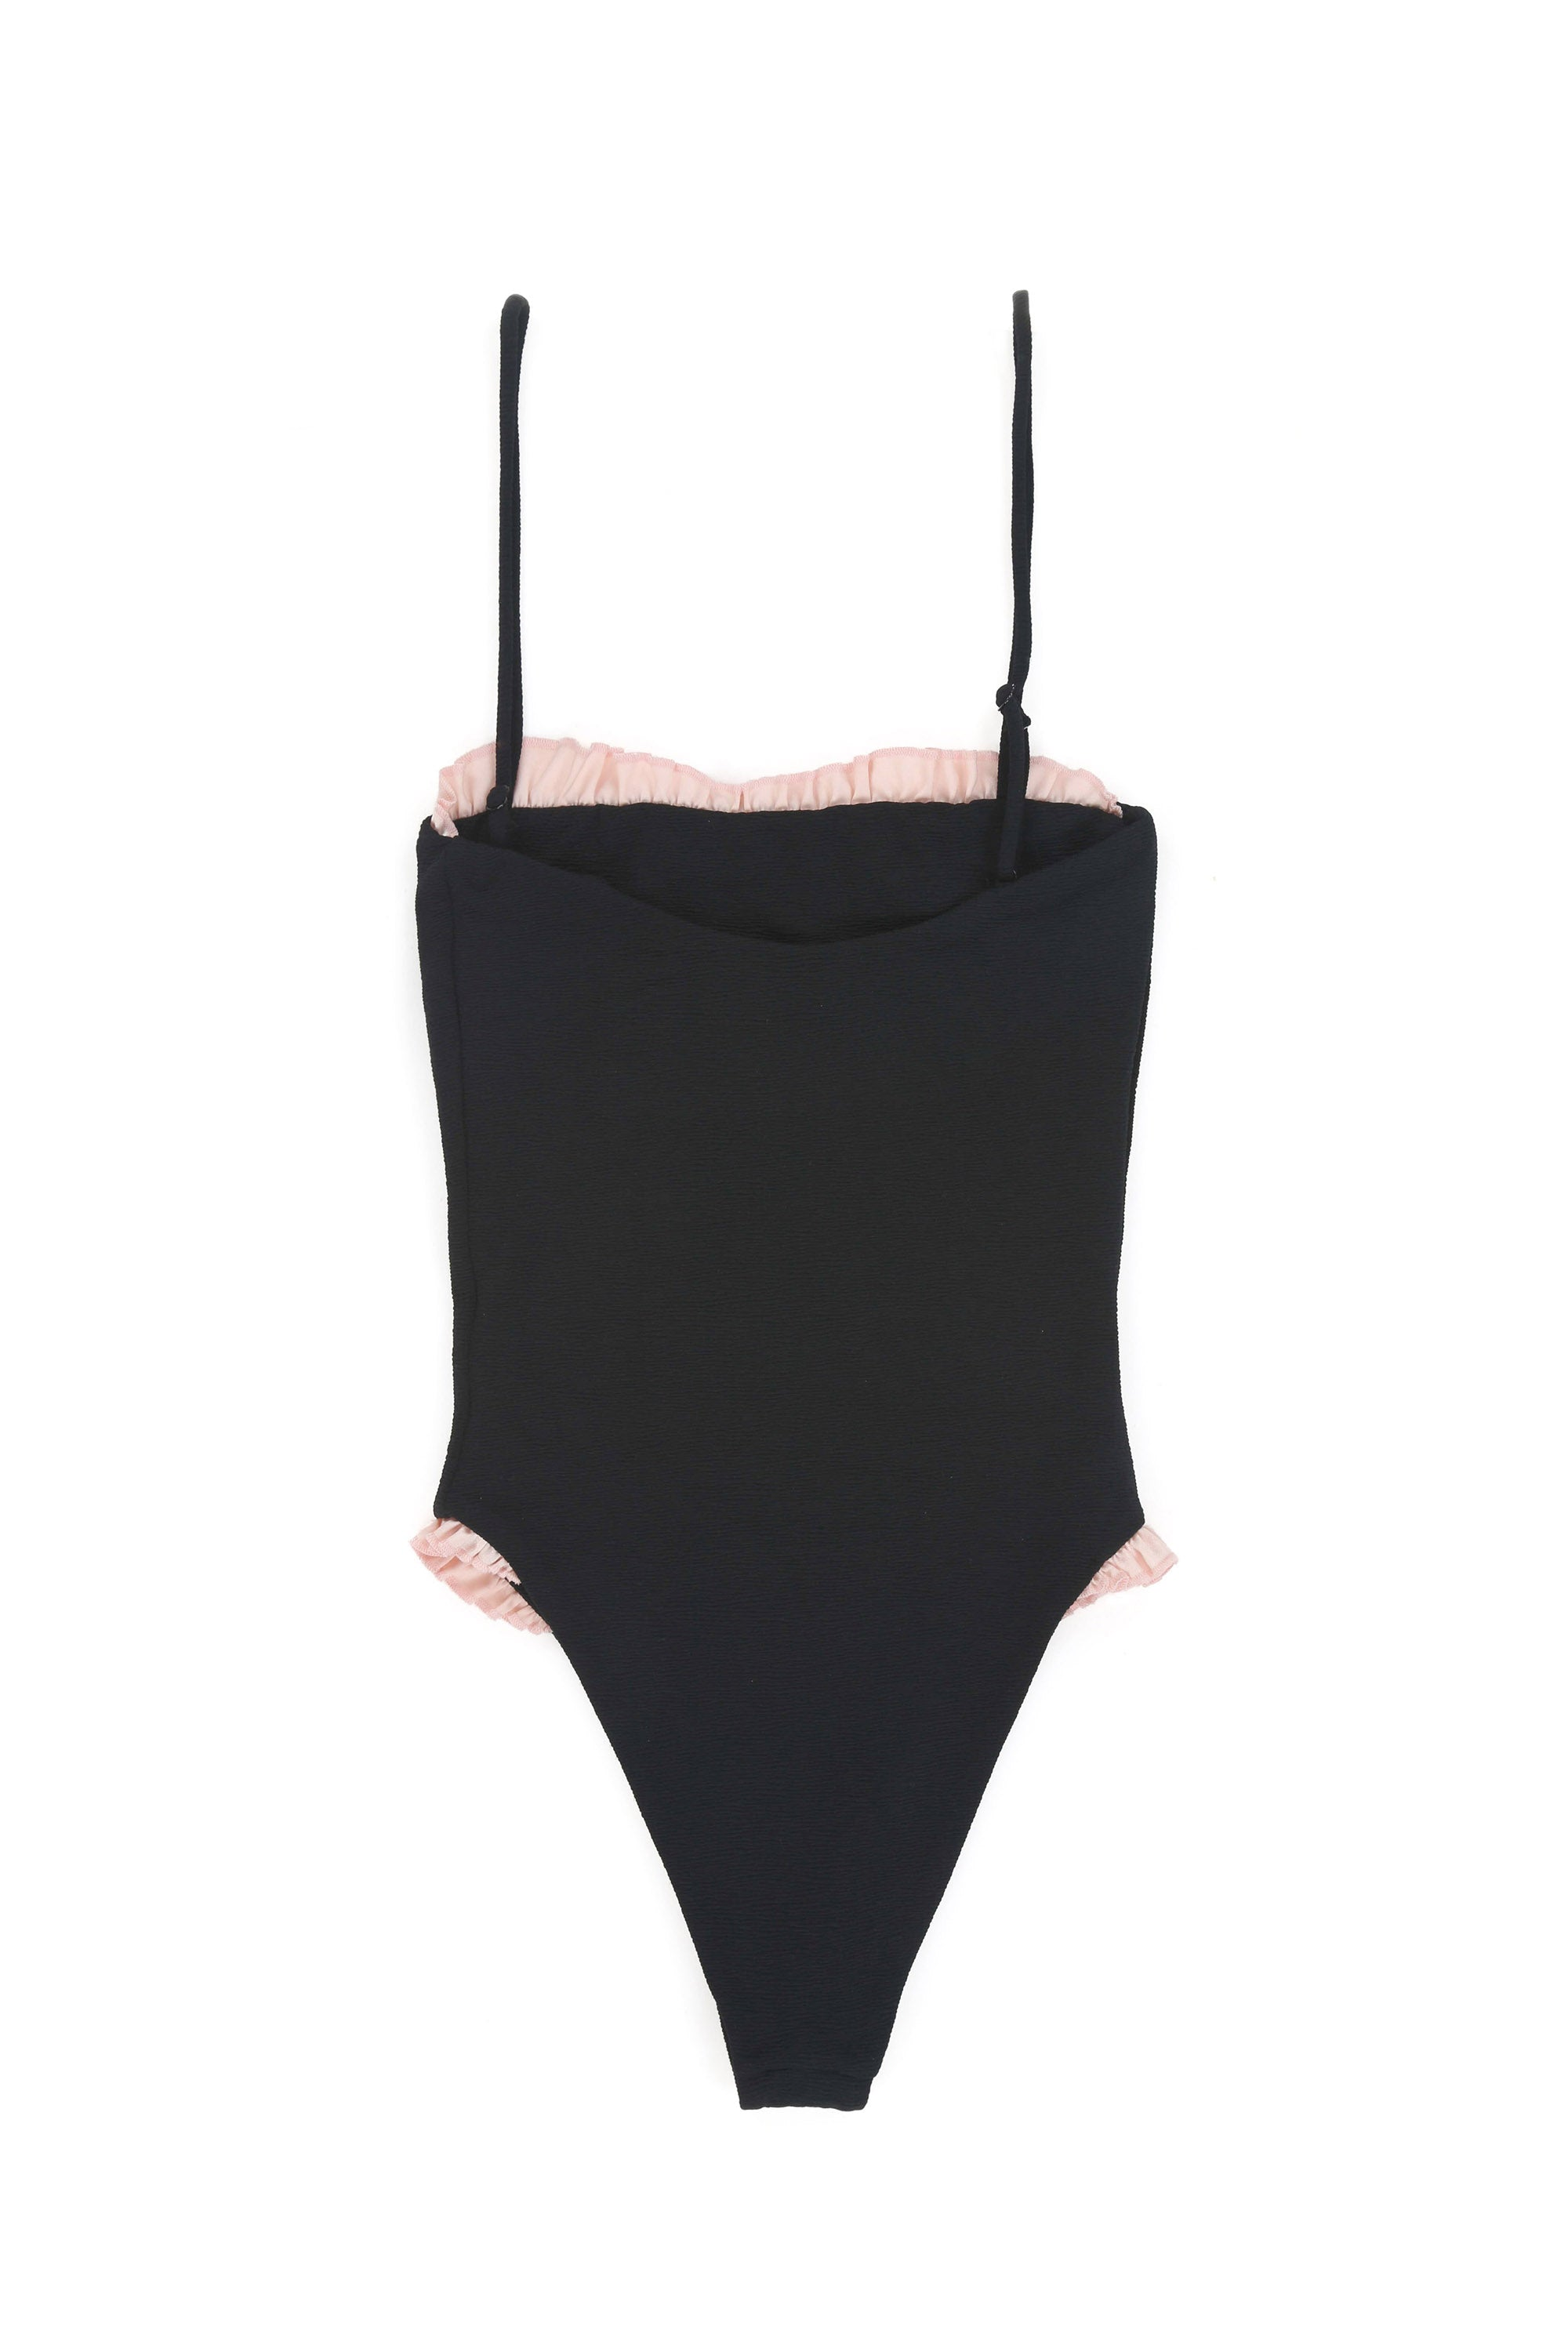 The Pin-Up One Piece (Textured Black/Pink)